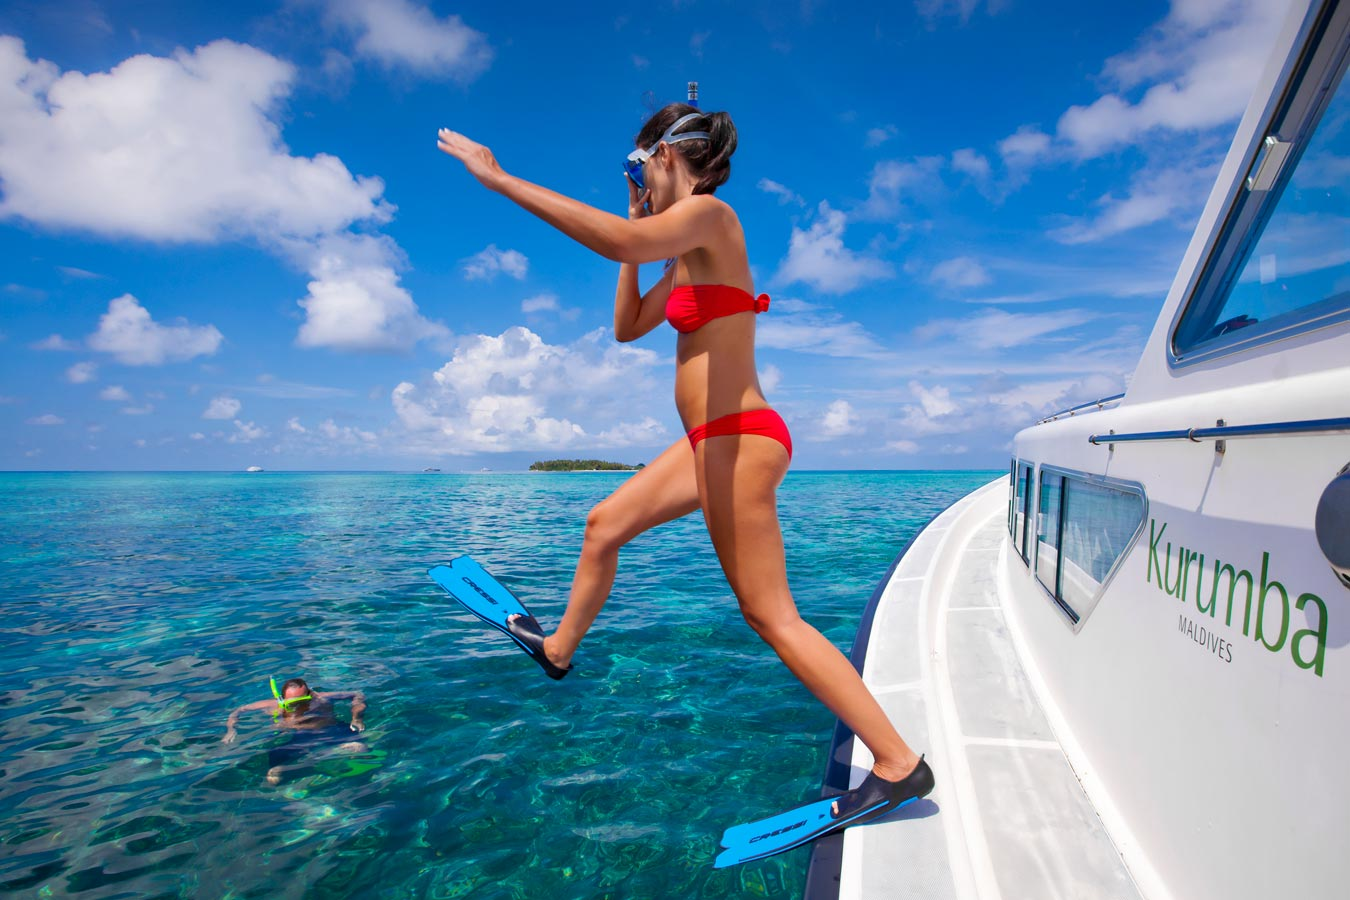 Snorkelling in the Maldives Islands image| Kurumba Maldives Resort